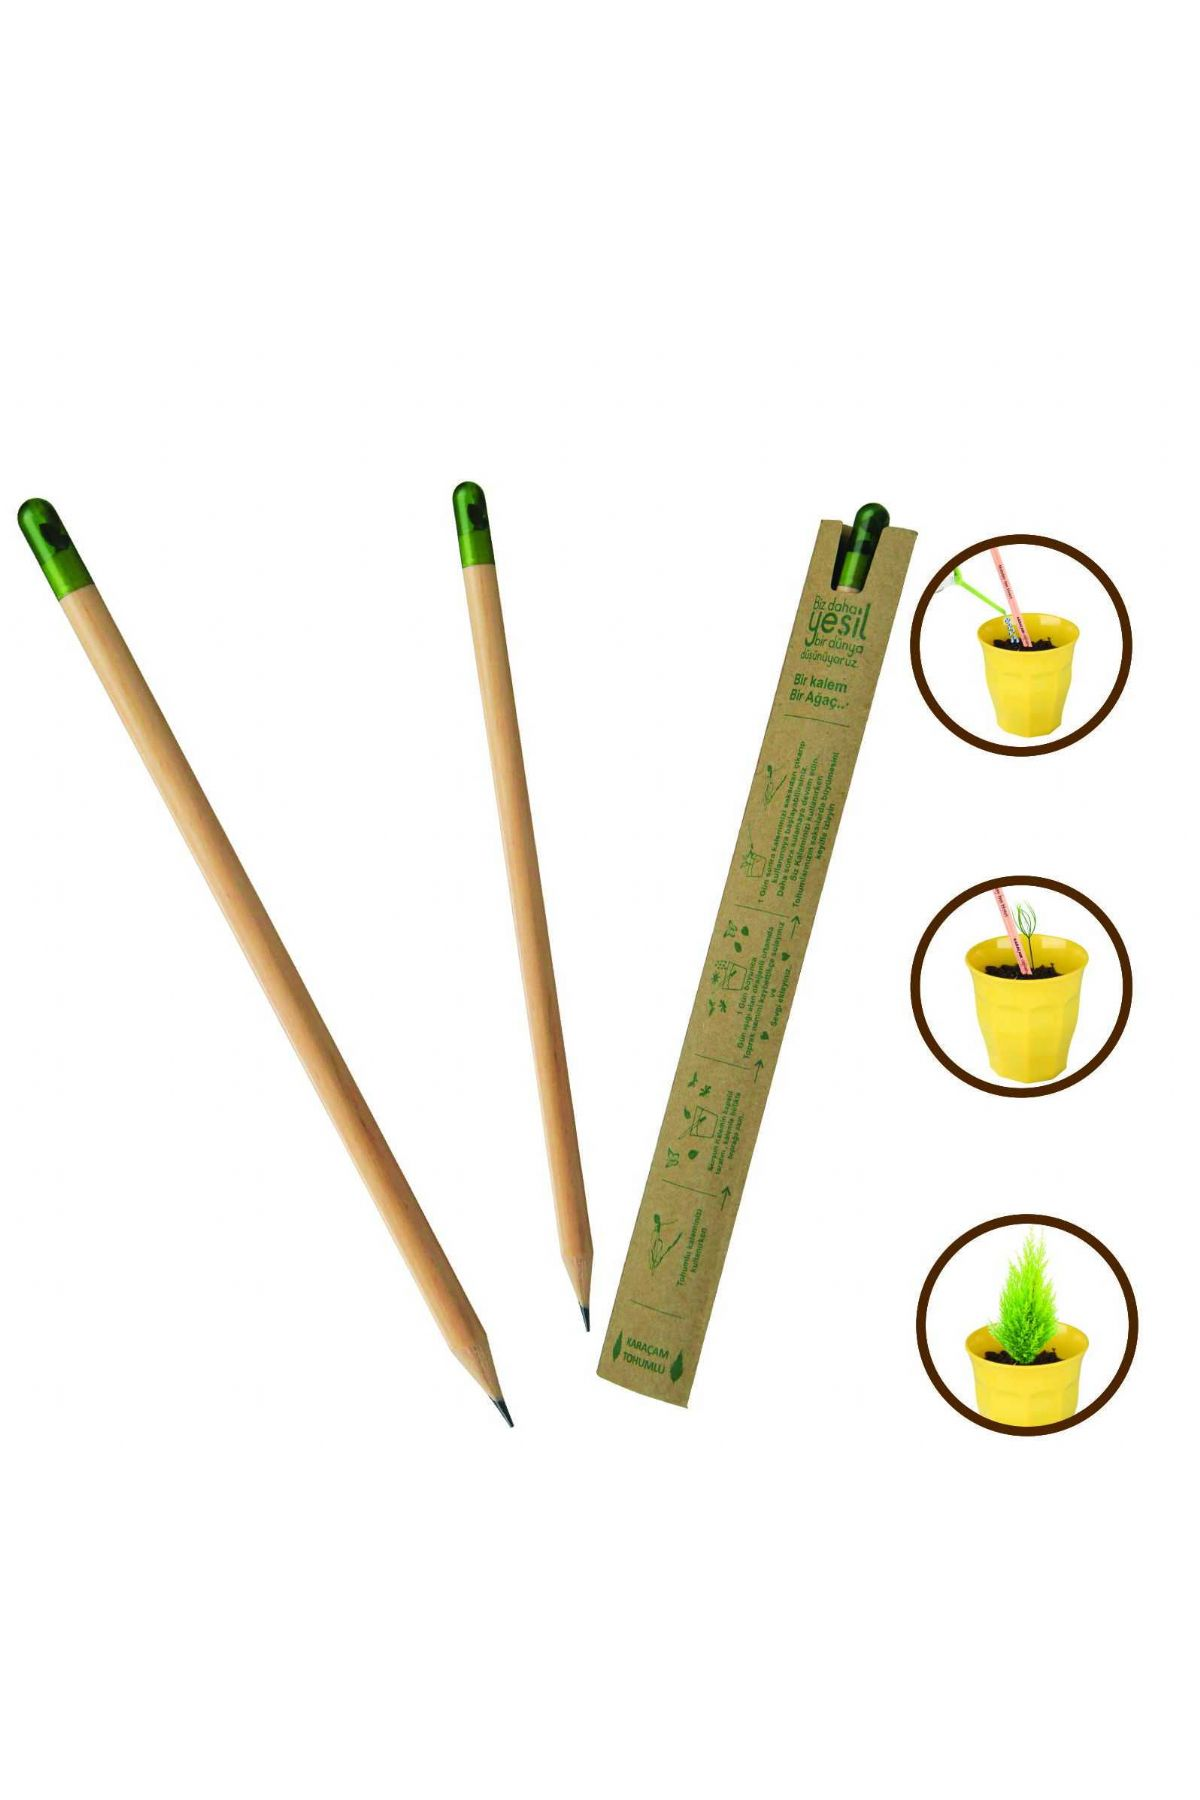 SEED PENCIL (IN YOUR NAME, 3 SEEDLING PLANTING WILL BE DONE, A SEEDLING WHICH GROWS FOR YOU)